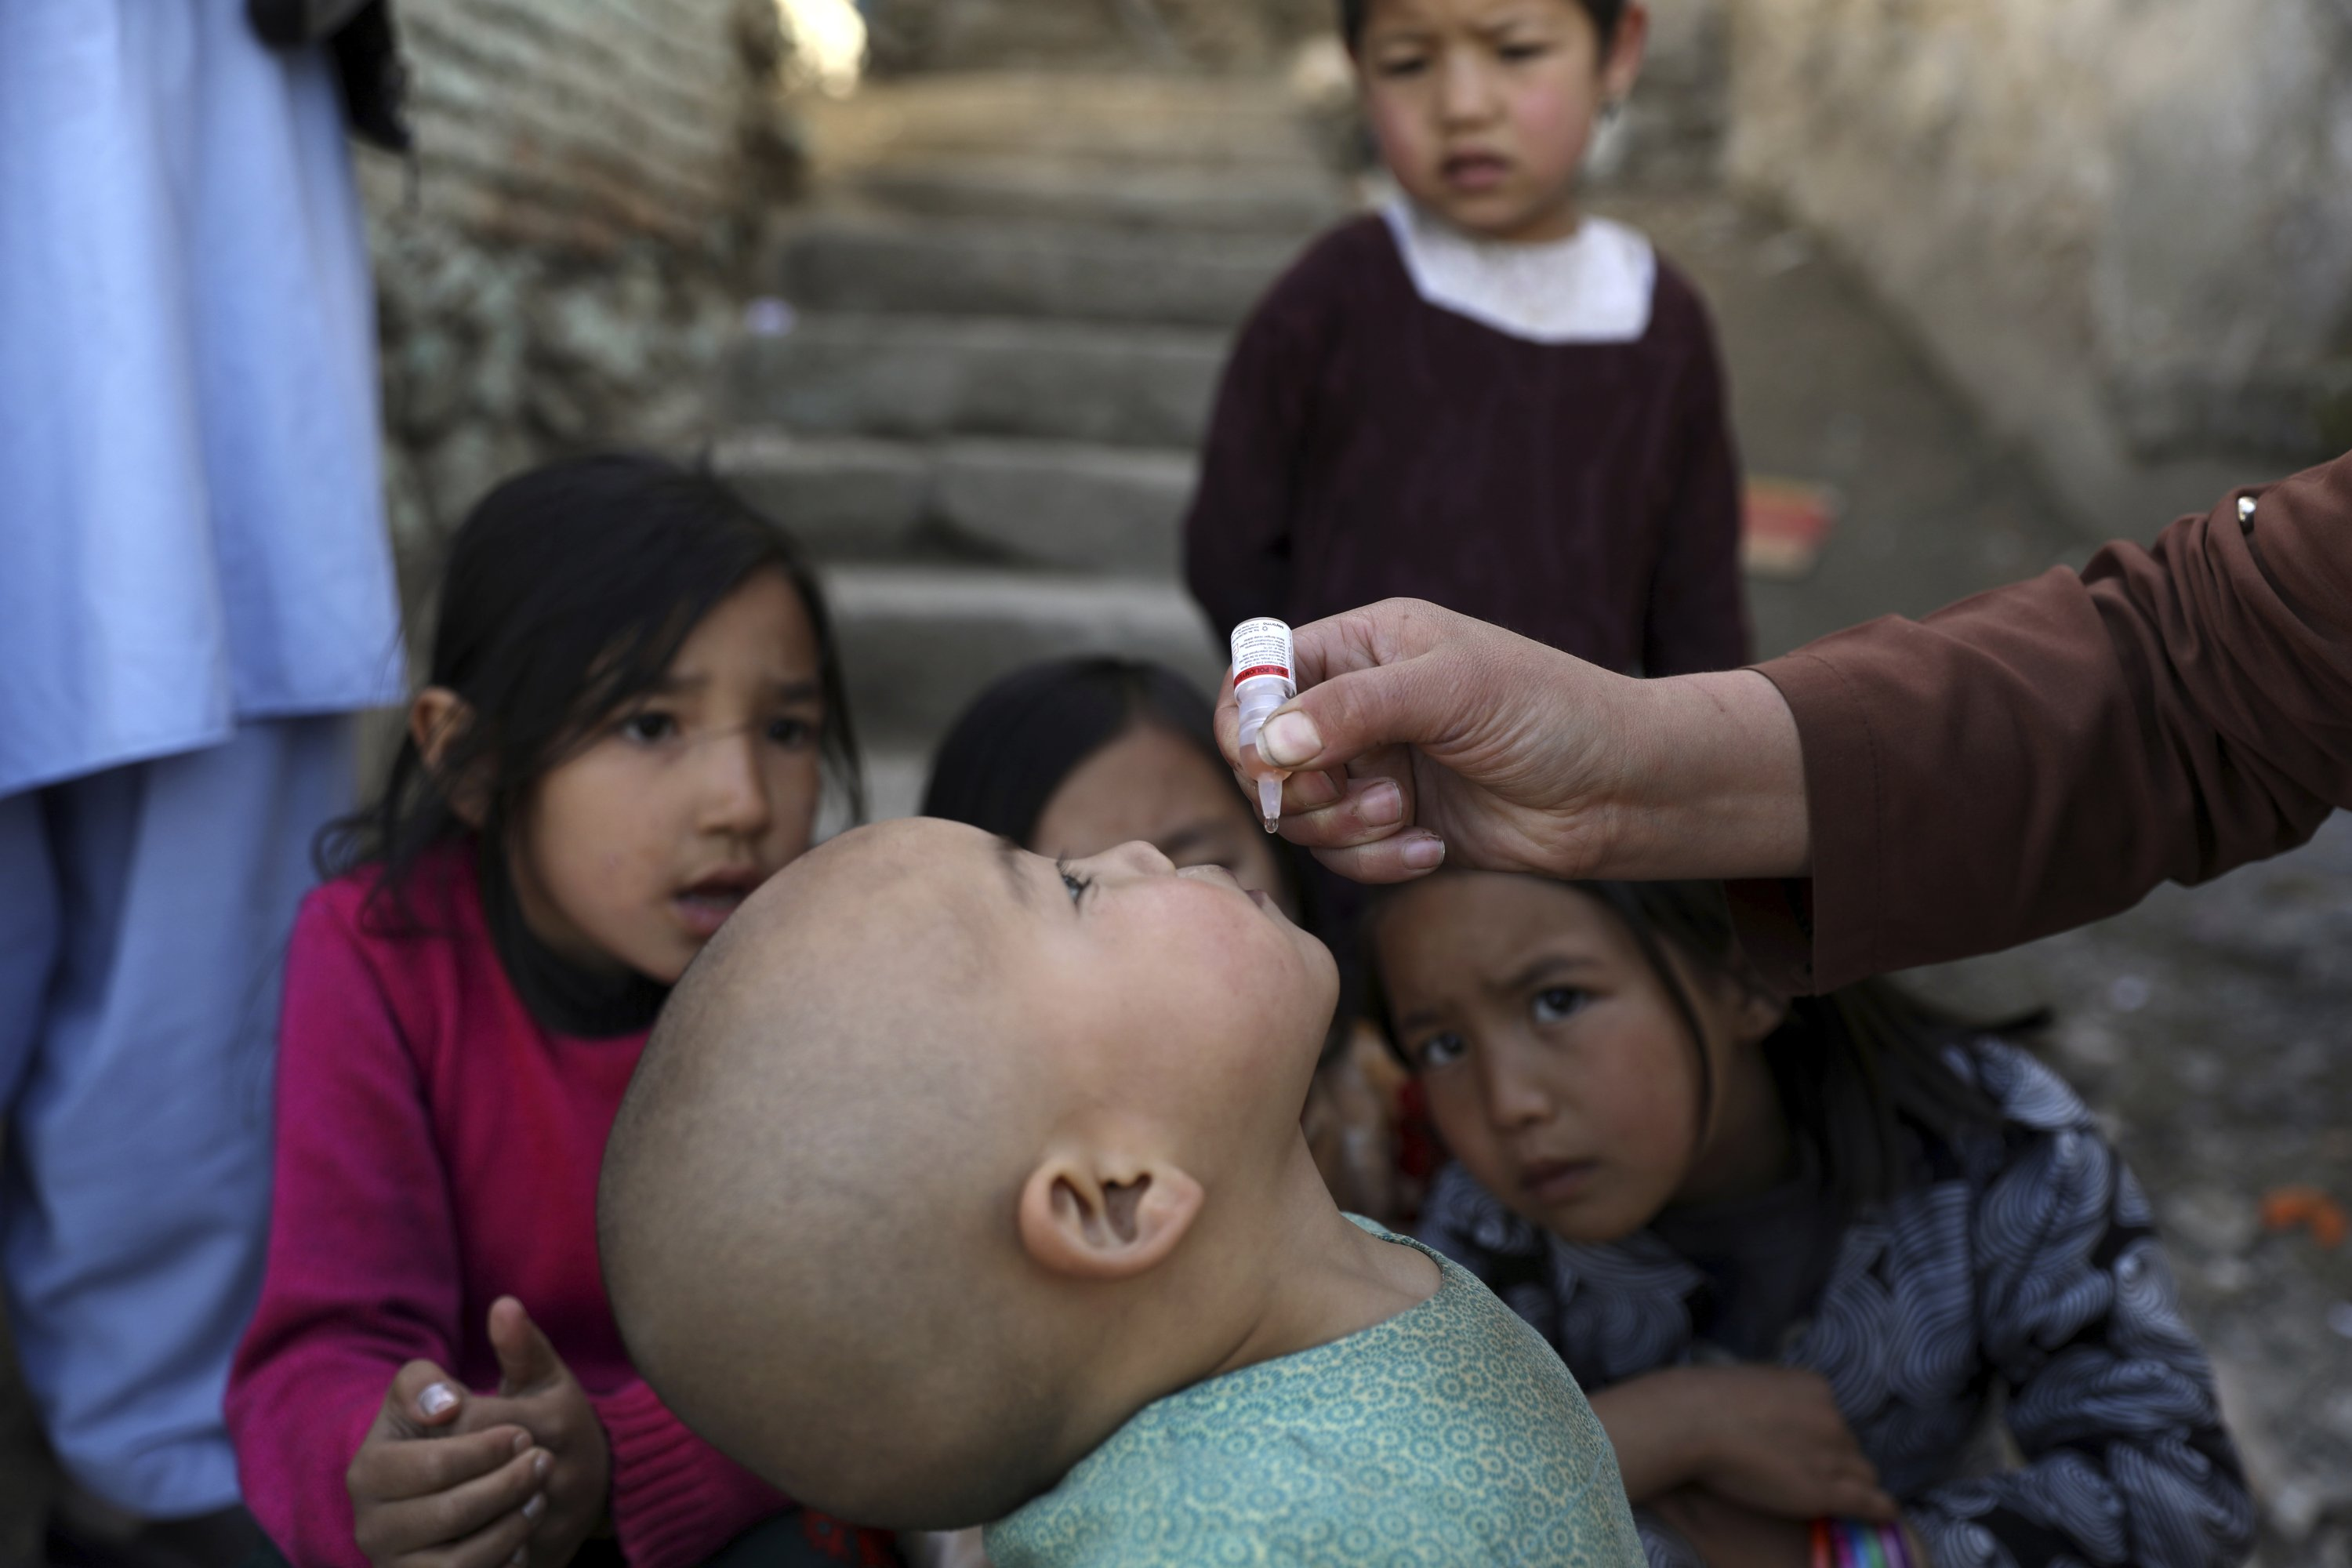 Shabana Maani, gives a polio vaccination to a child in the old part of Kabul, Afghanistan, March 29, 2021. (AP Photo)